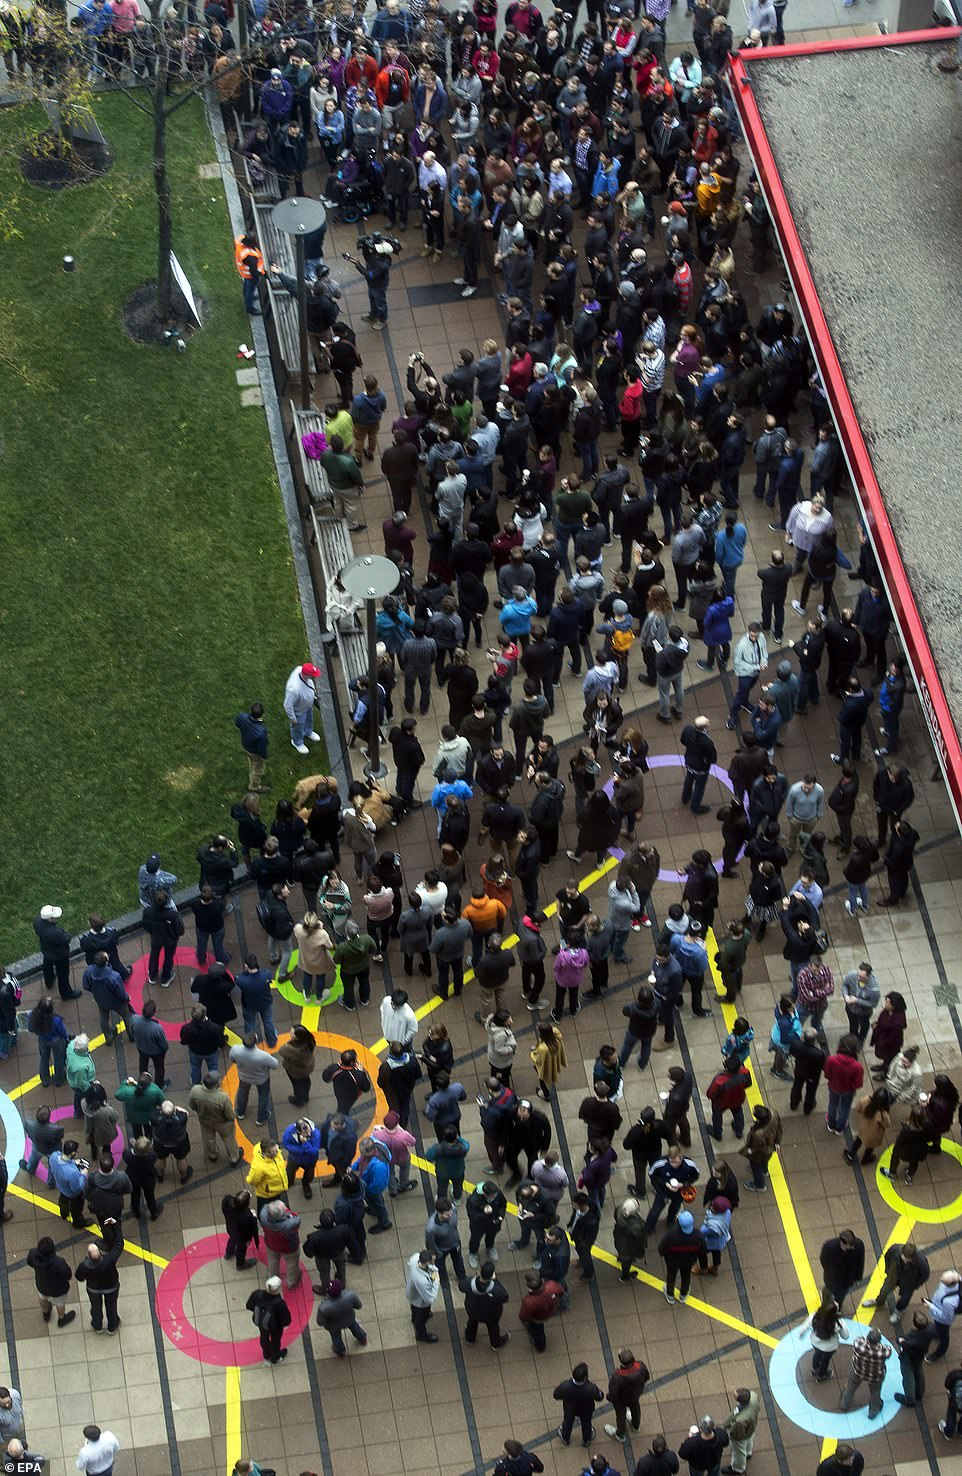 Google Inc. employees strike when they call for a secure job outside Kendall Square MBTA Station in Cambridge, Massachusetts